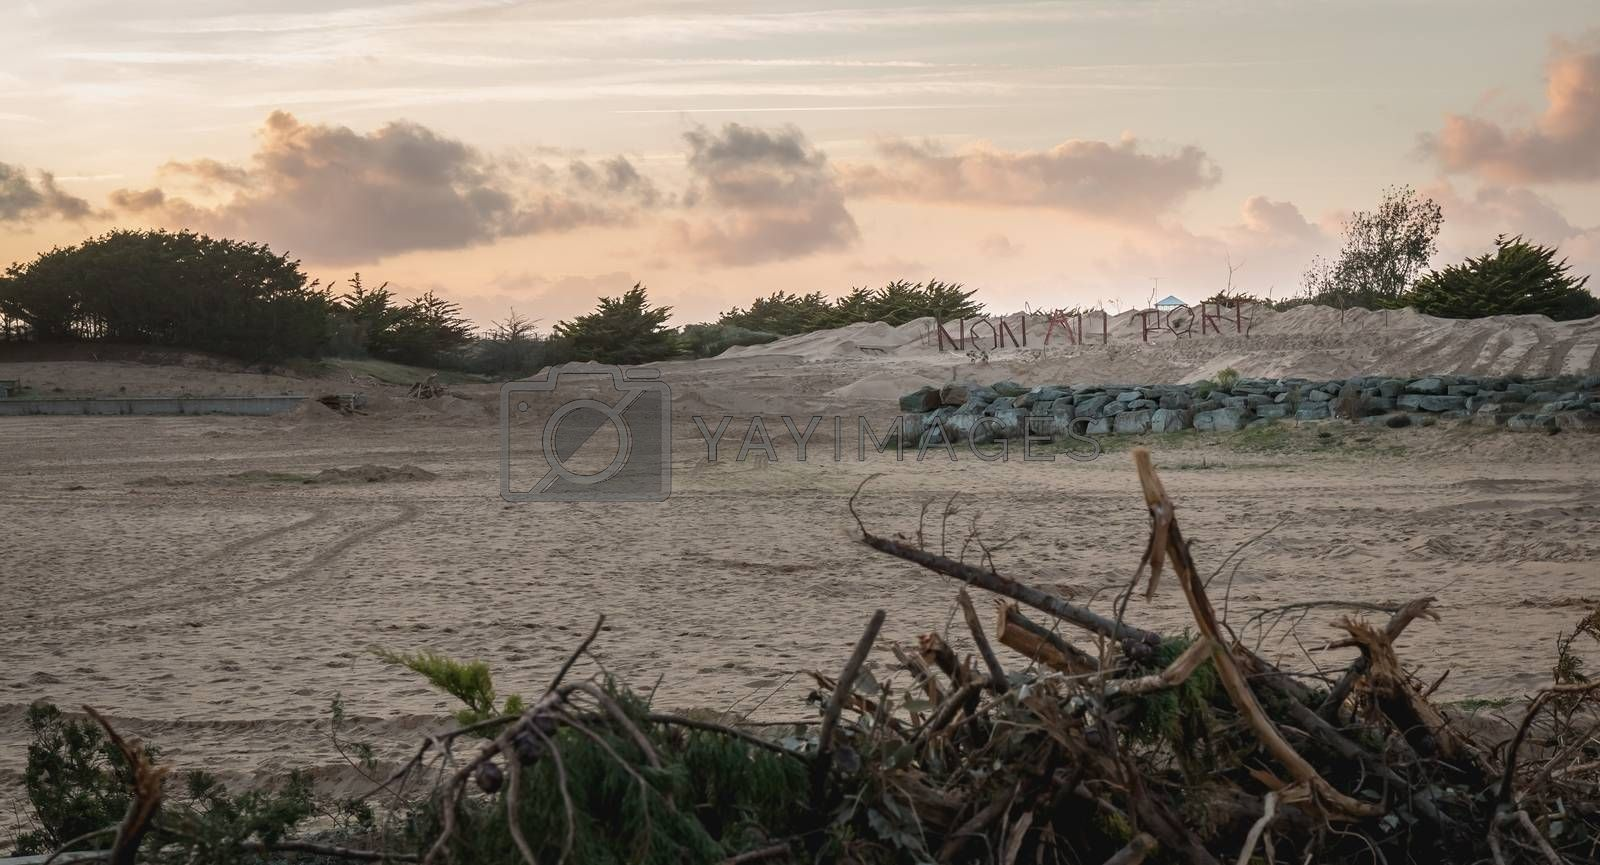 Bretignolles sur Mer, France - October 9, 2019: No to the Port in French made in log on a ZAD (Acronym of Zone to Defend) protest zone against the construction of the boat harbor